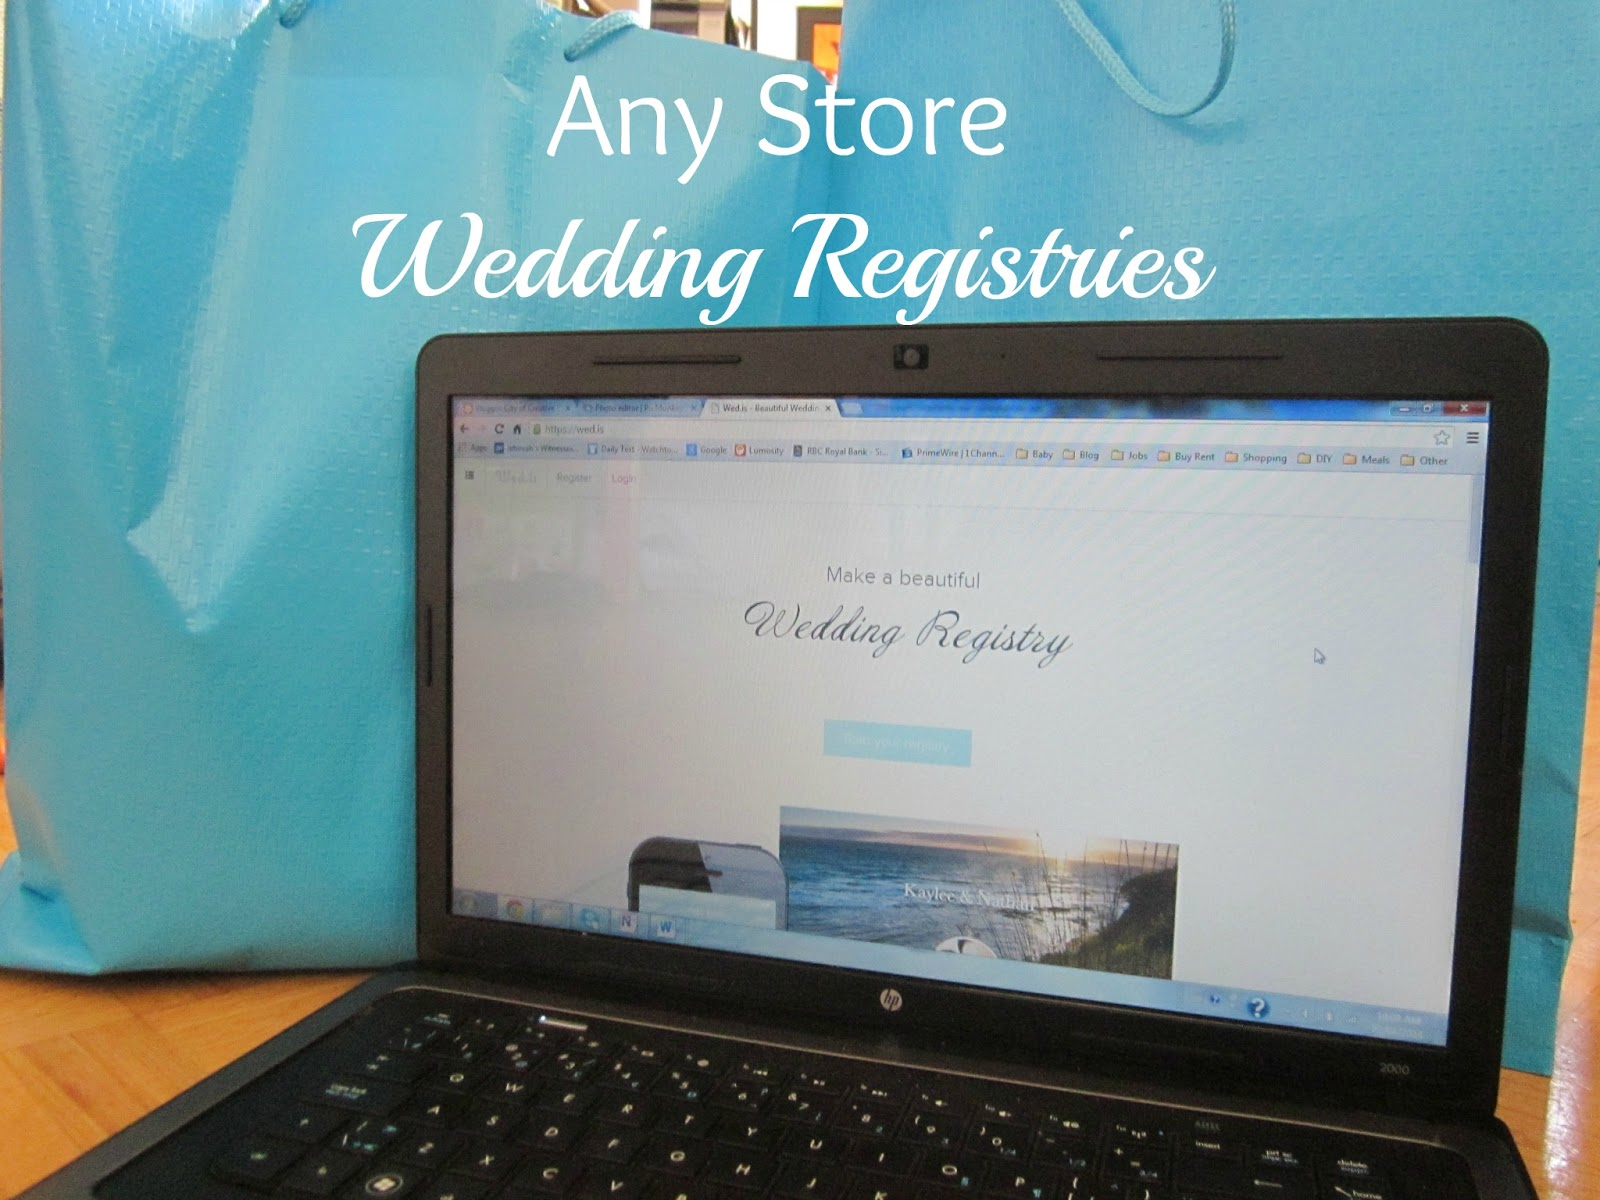 any store wedding registries